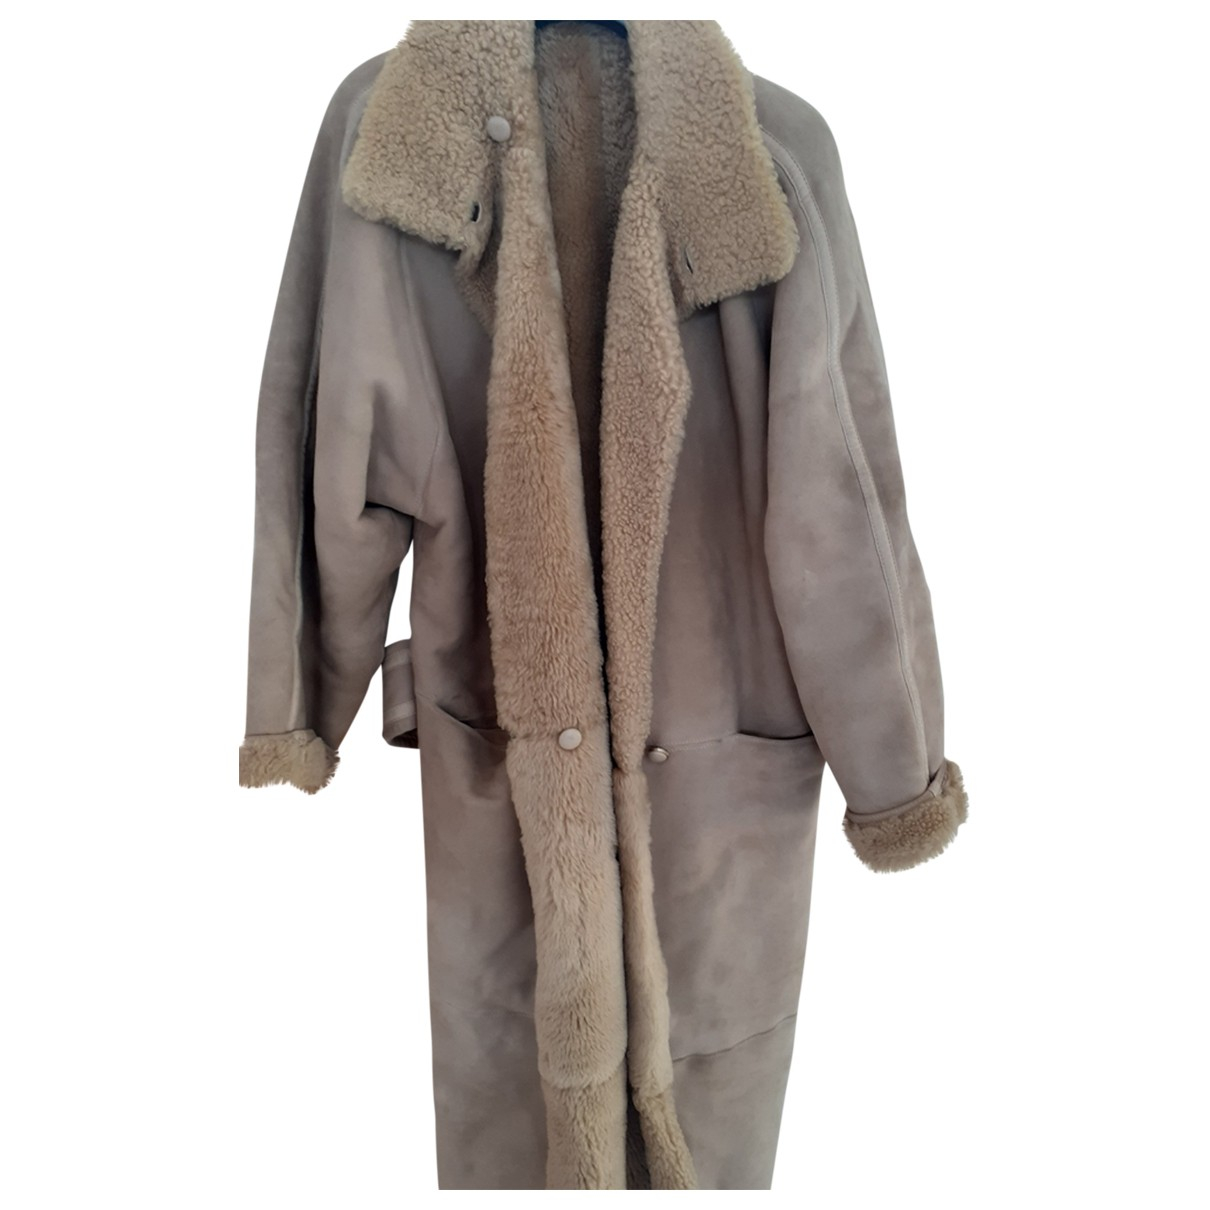 Gianni Versace \N Beige Wool coat for Women One Size FR